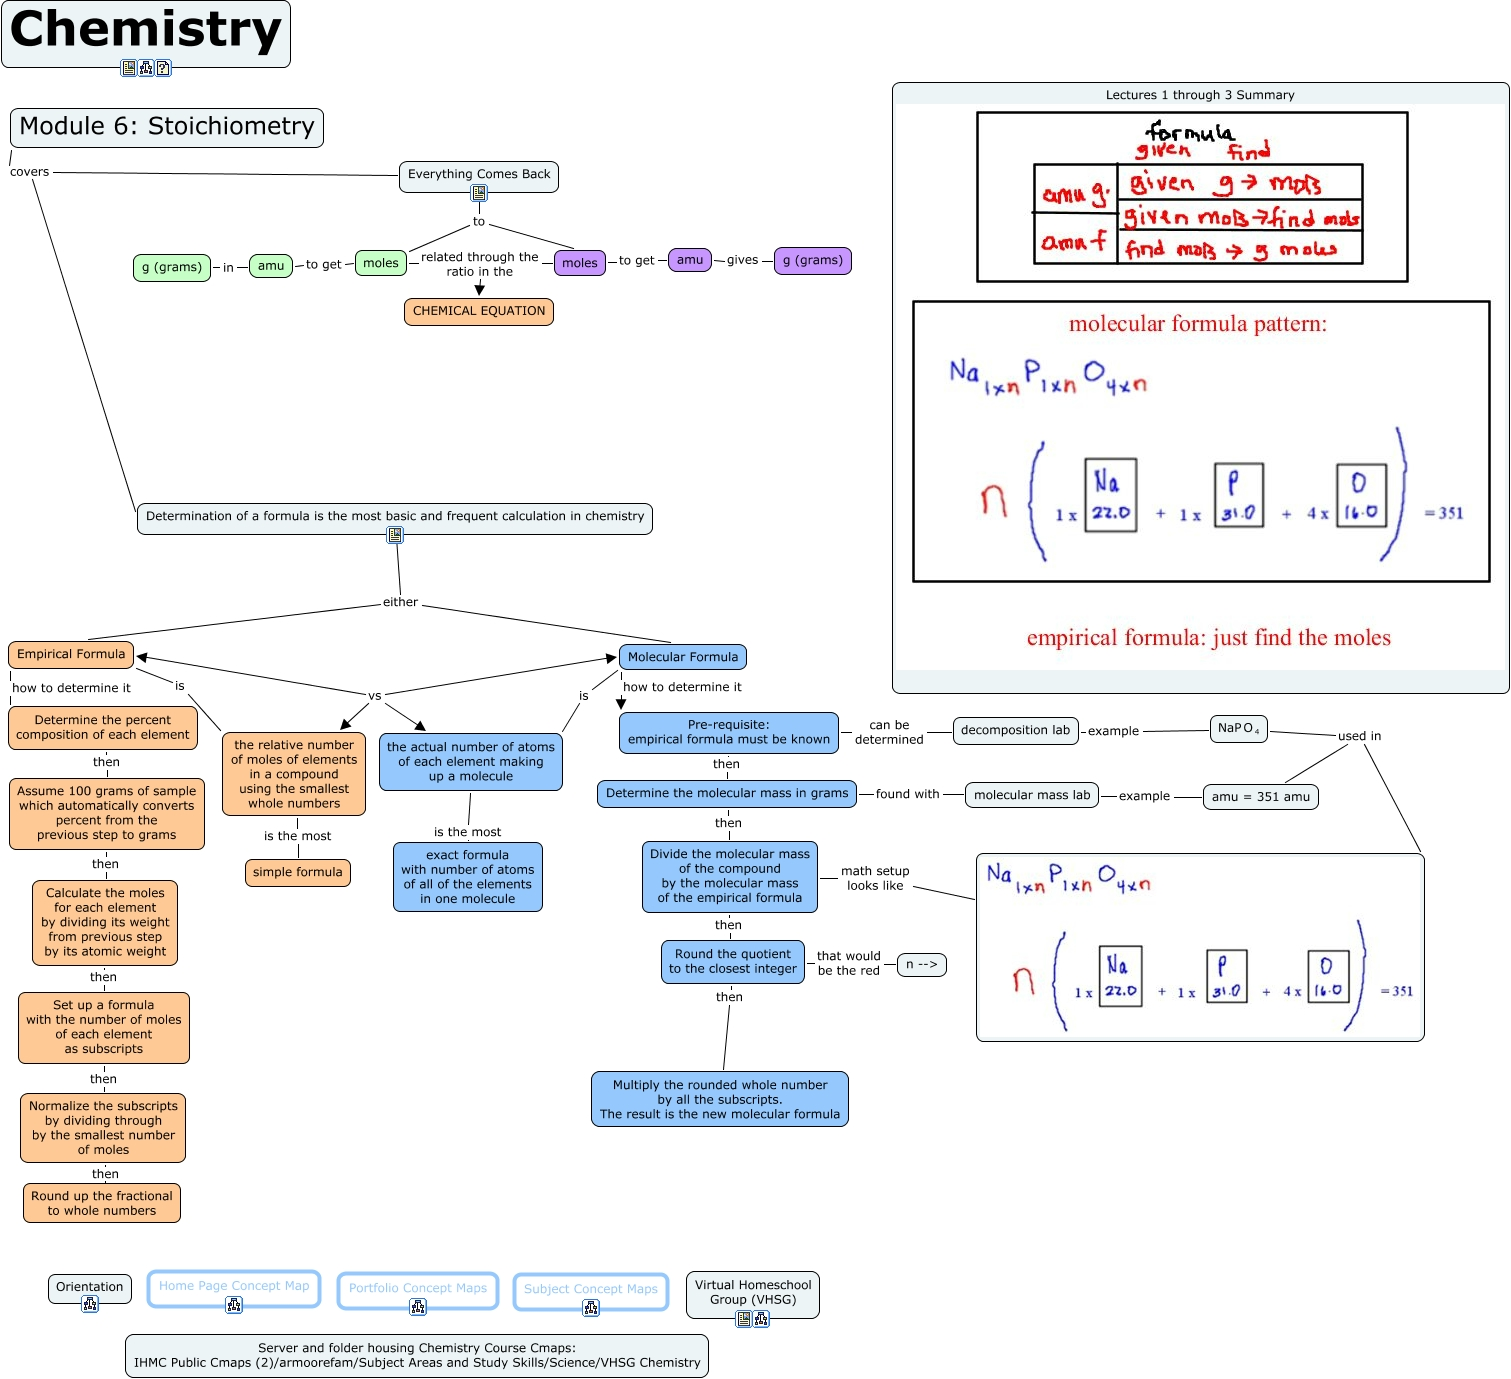 Stoichiometry Concept Map.Apologia Ed 1 Module 6 Concept Map What Is Covered In Module 6